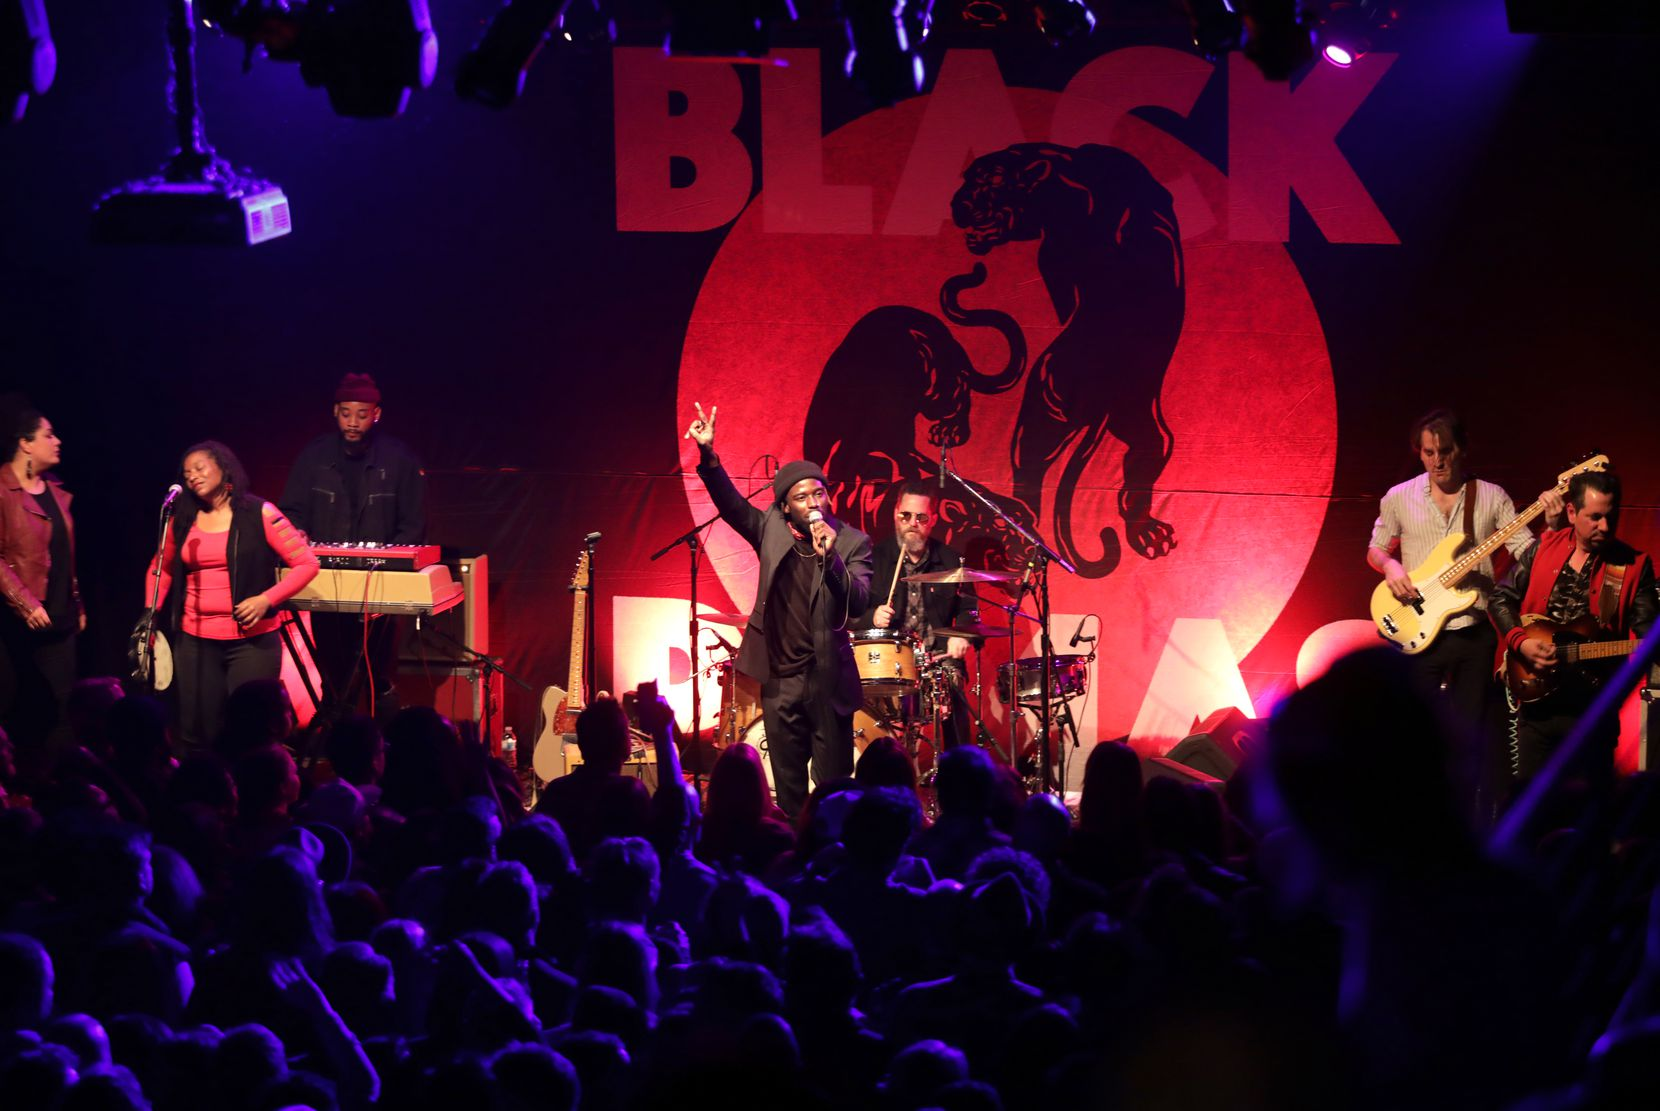 The Black Pumas perform at the Kessler Theater on Jan. 11, 2020.